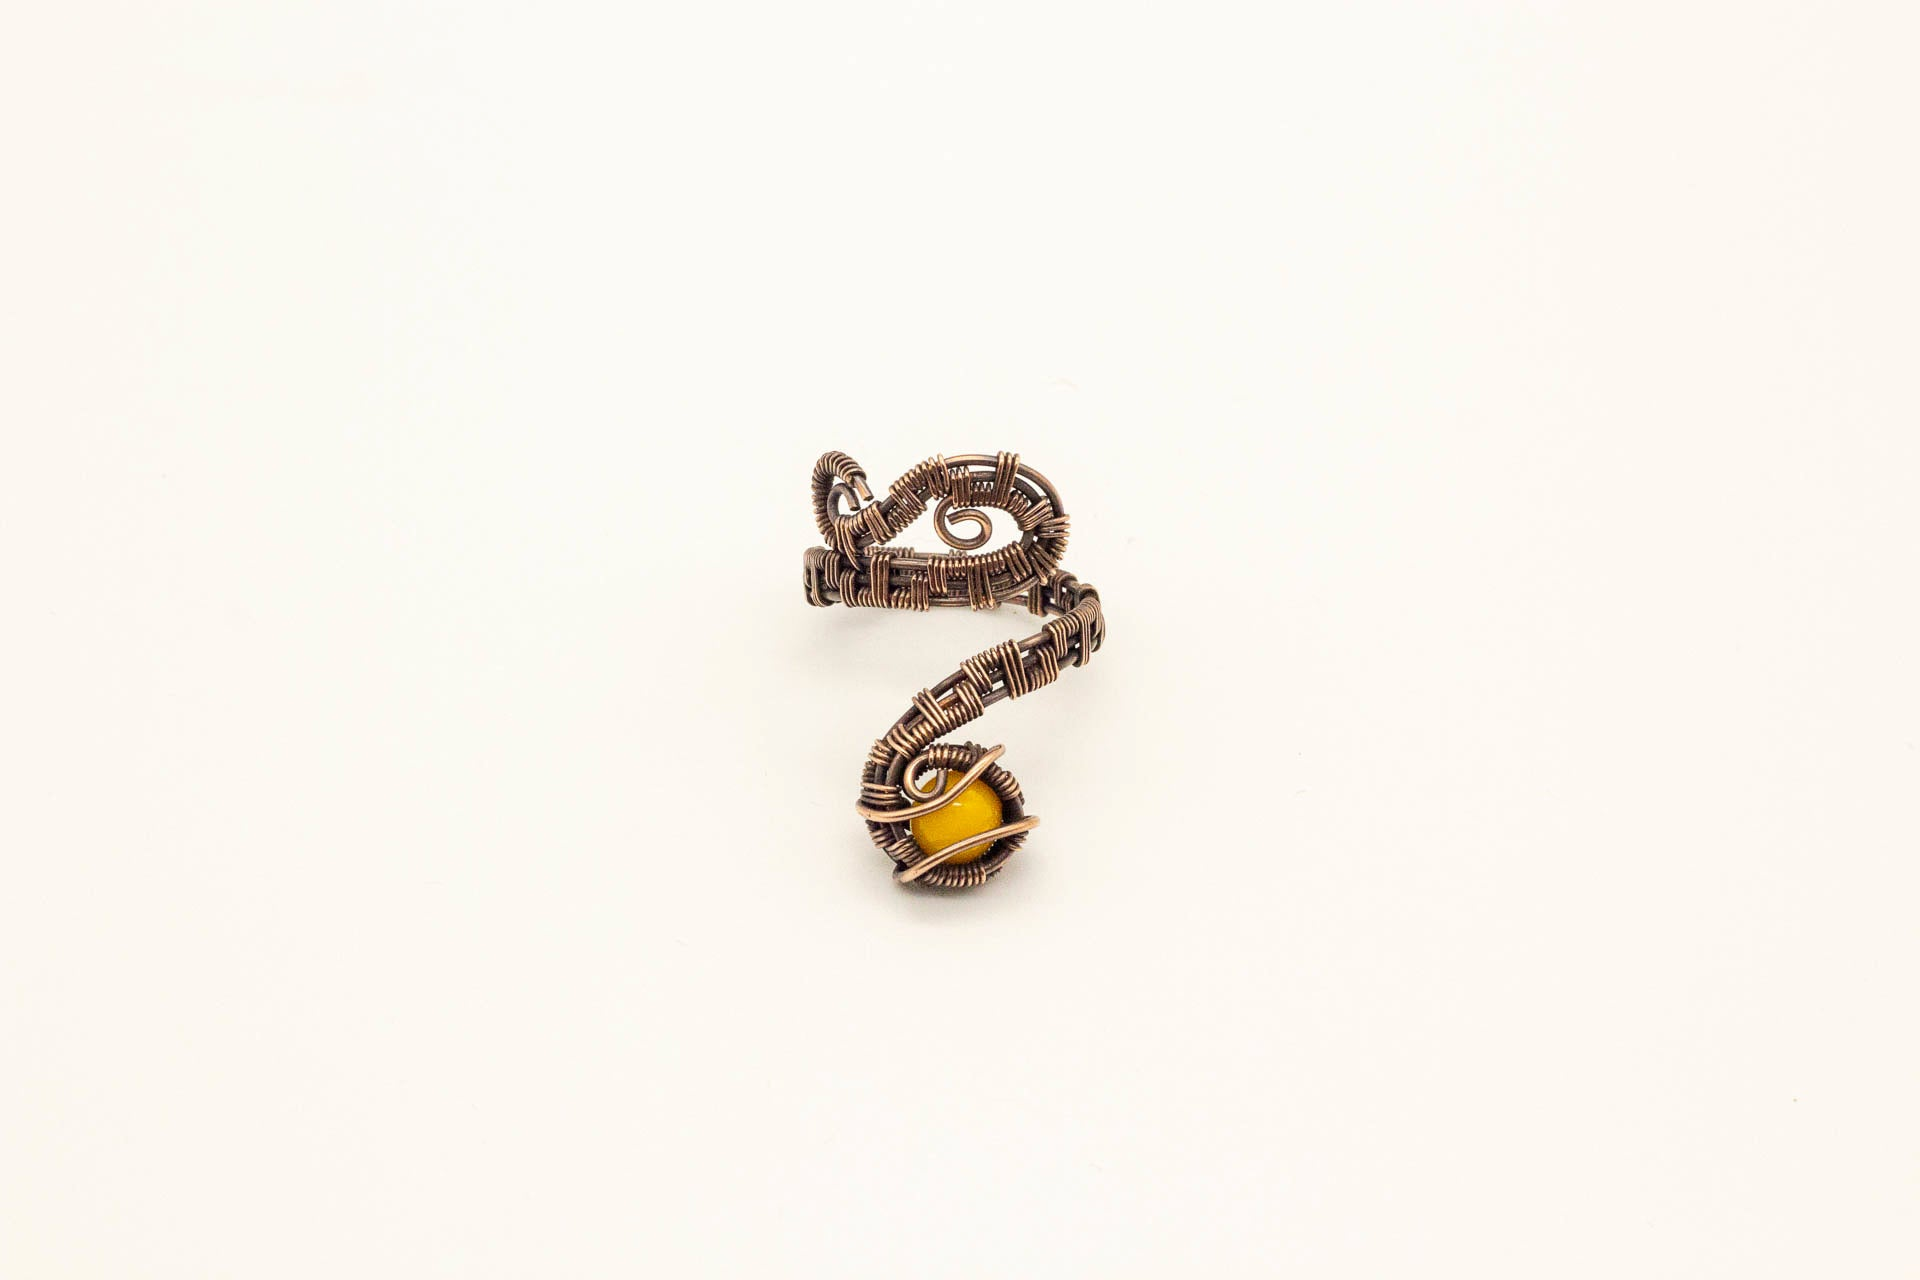 bright-yellow-fused-glass-copper-adjustable-ring-nymph-in-the-woods-jewelry